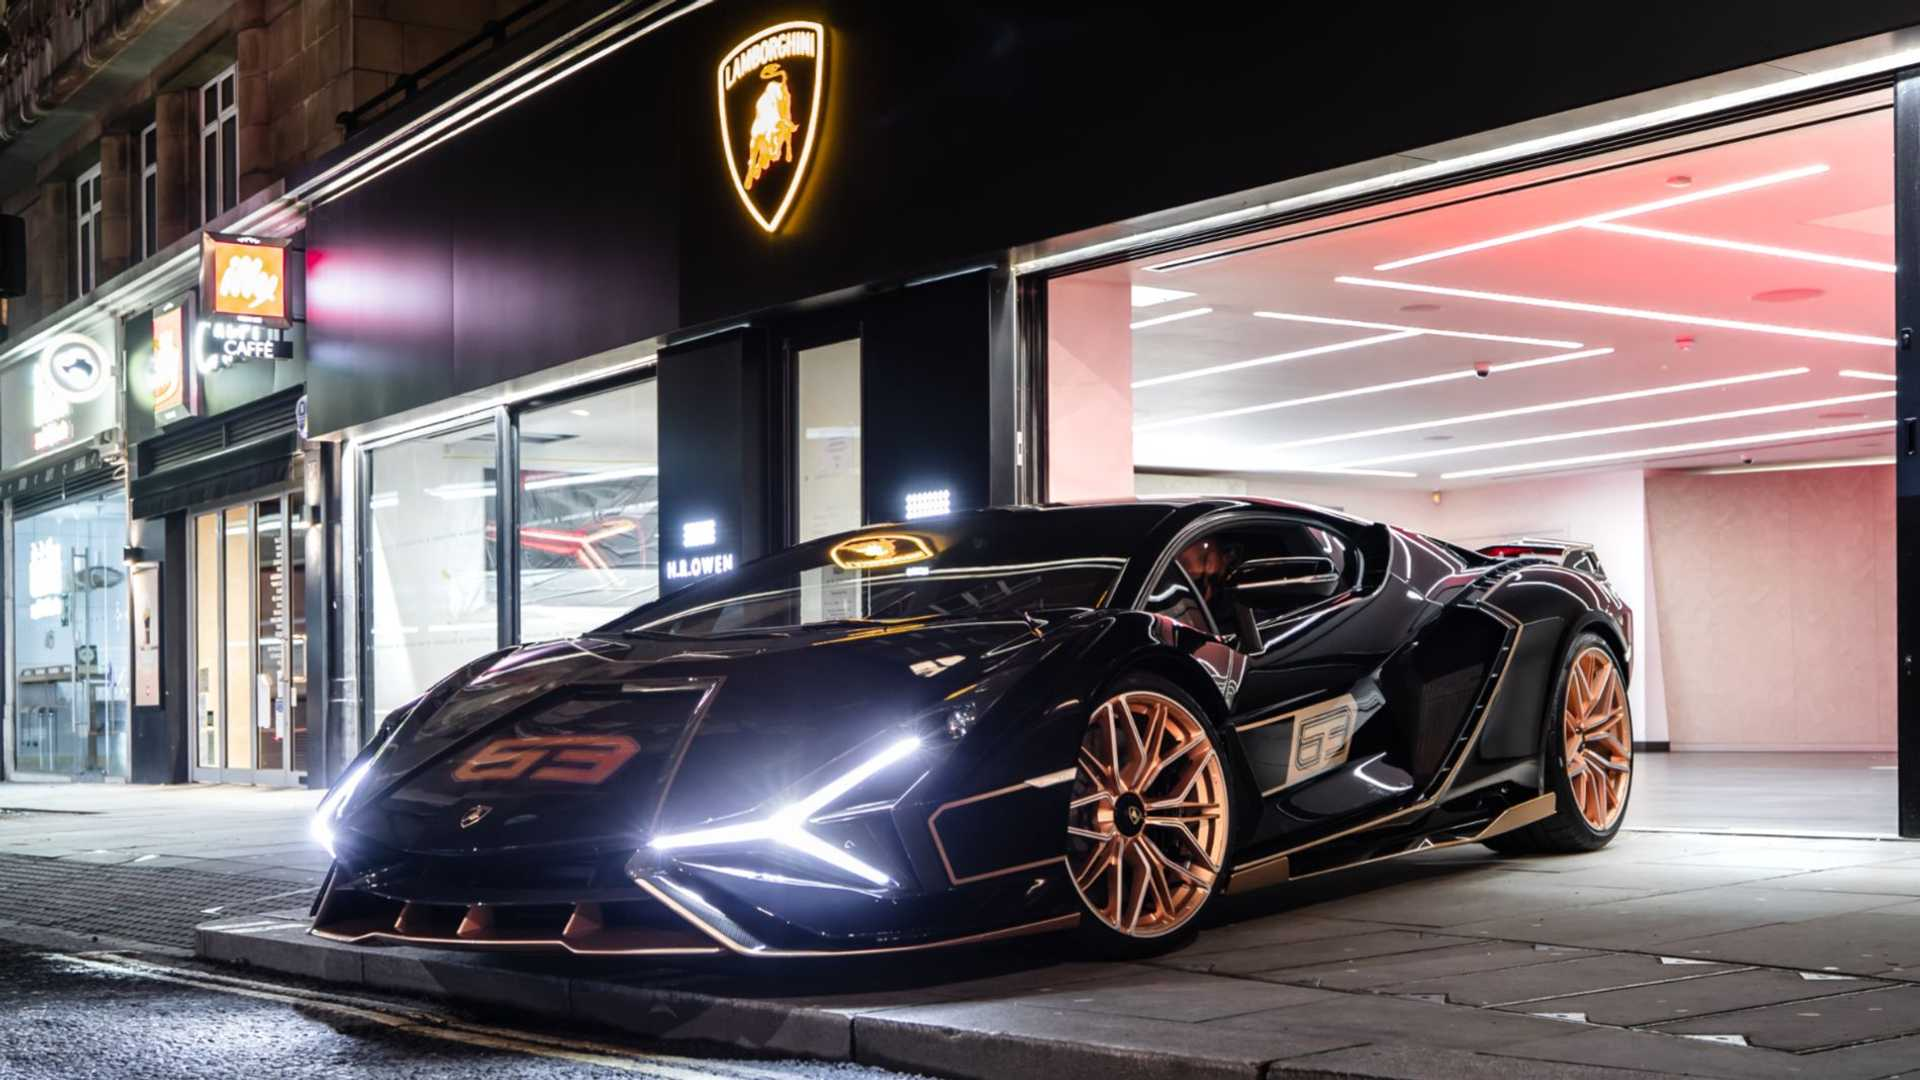 Lamborghini Sian in London